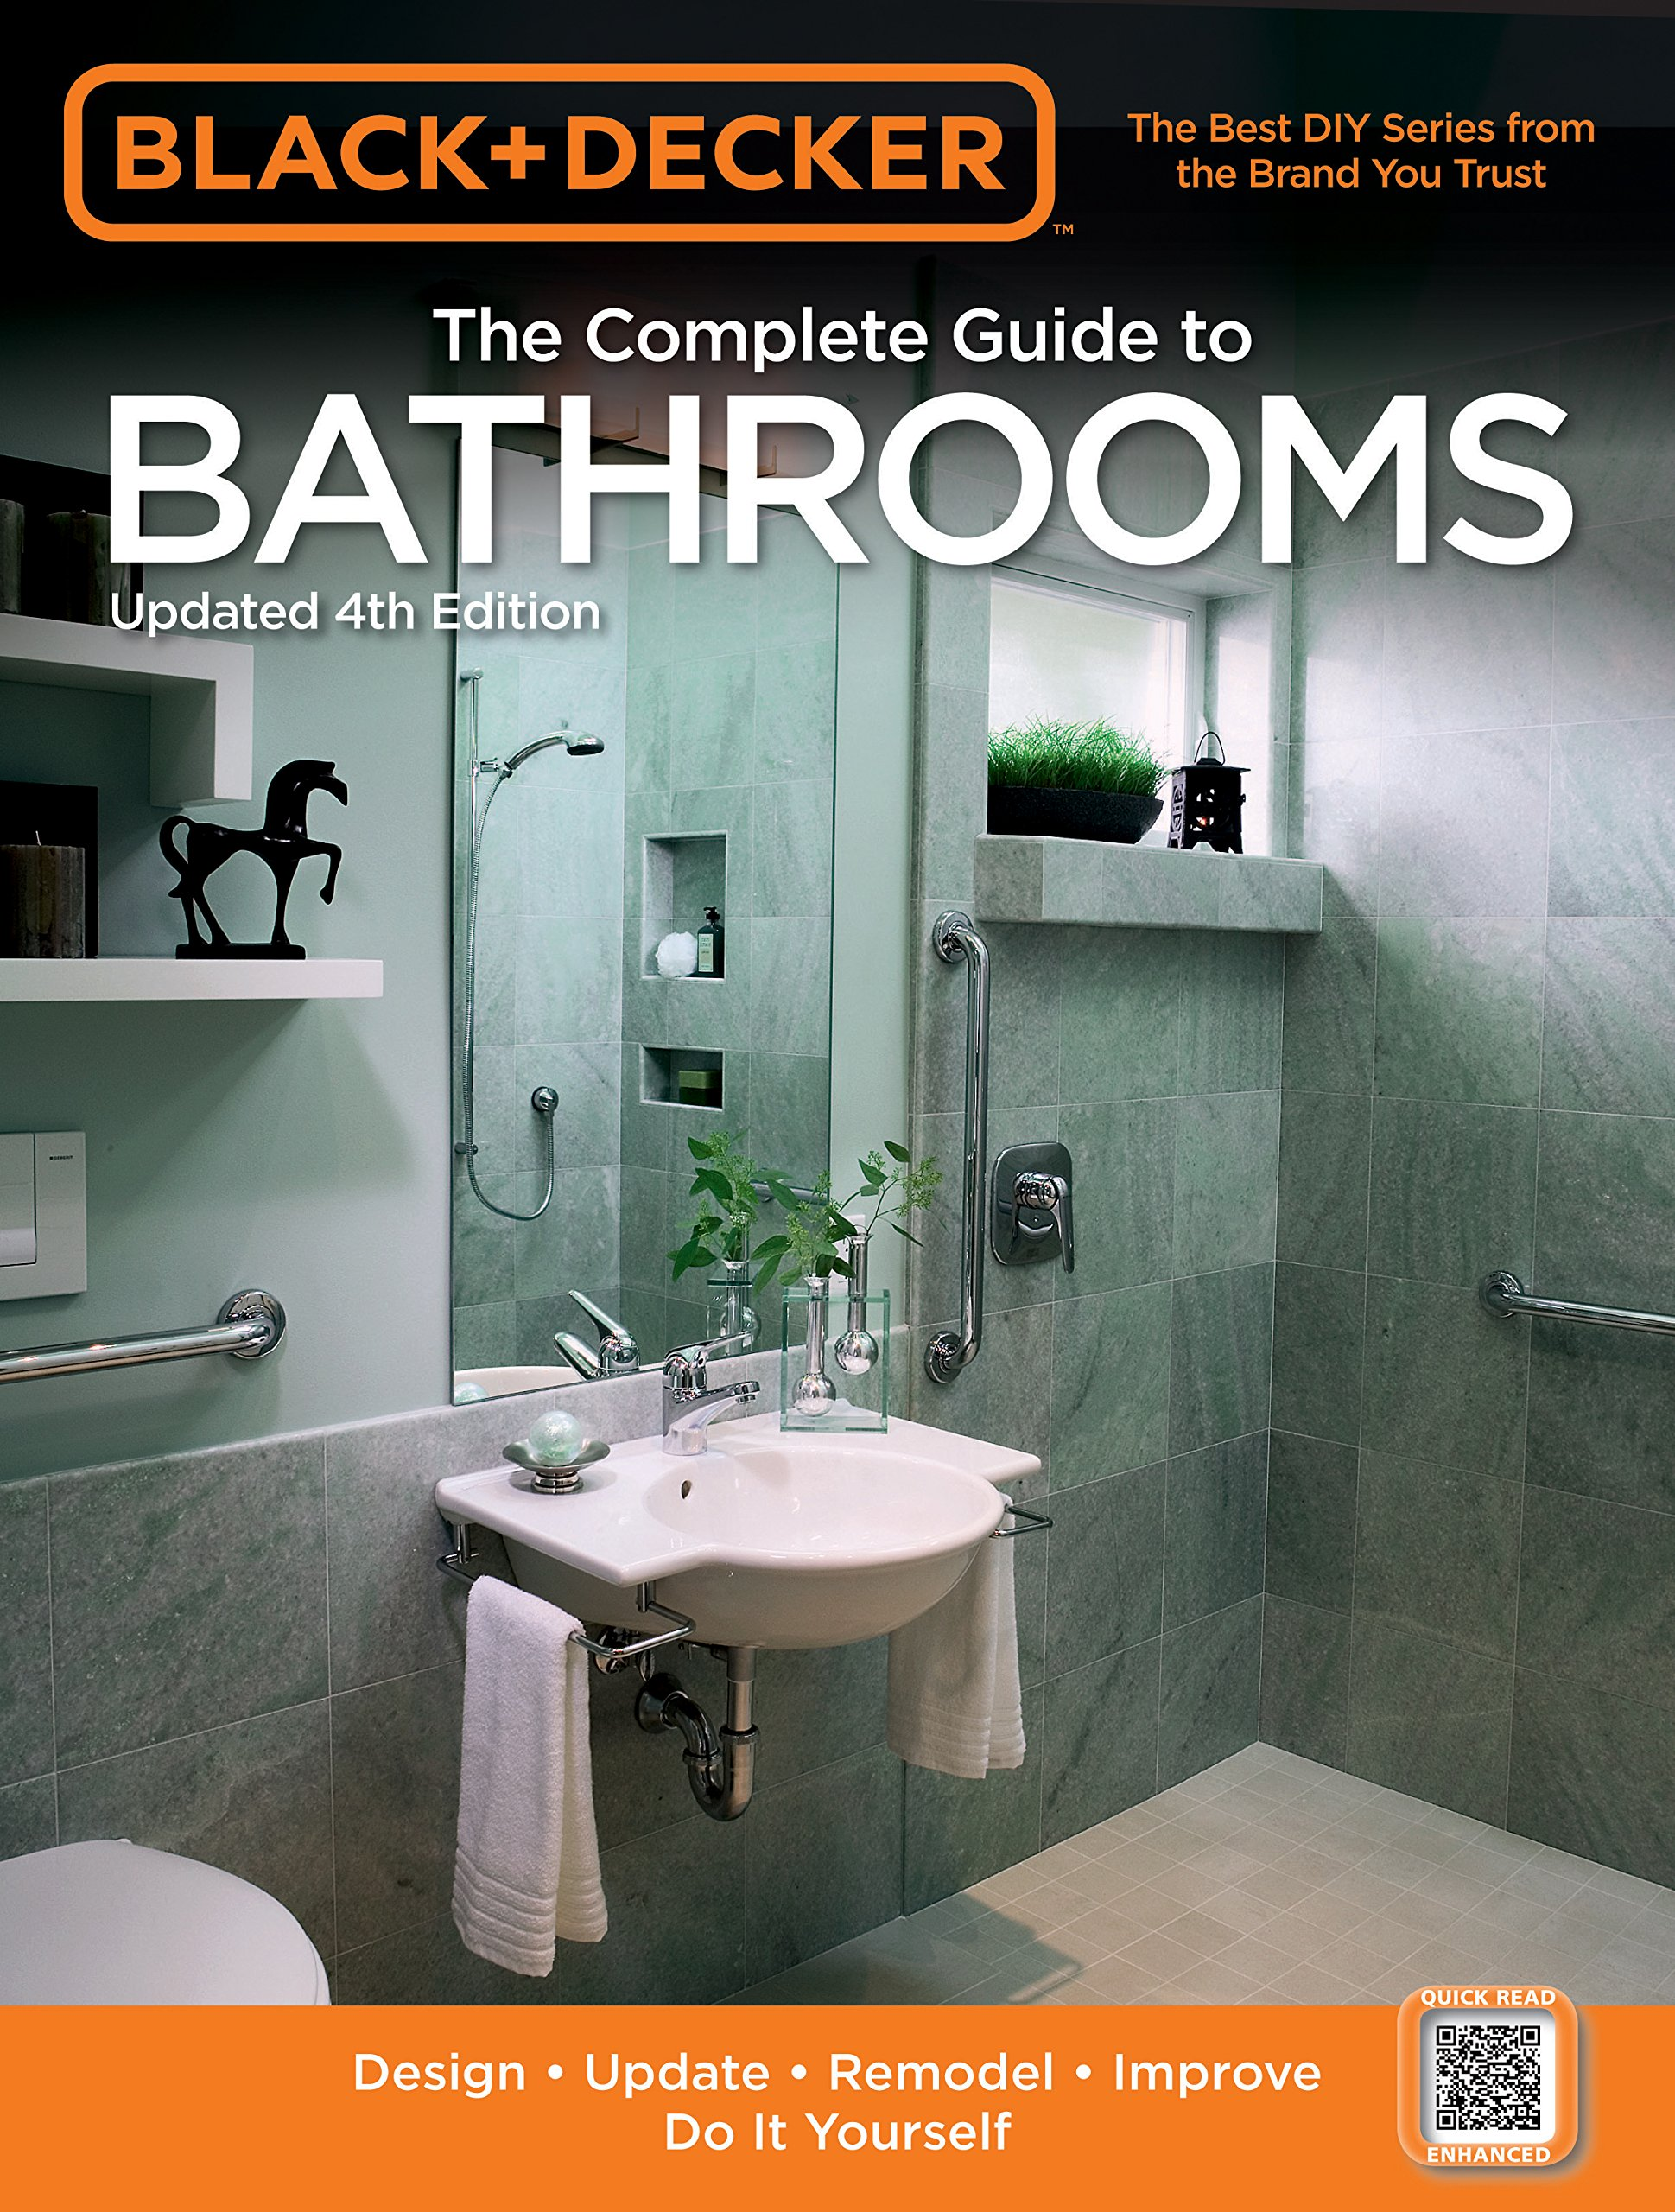 Black Decker Complete Guide Bathrooms product image